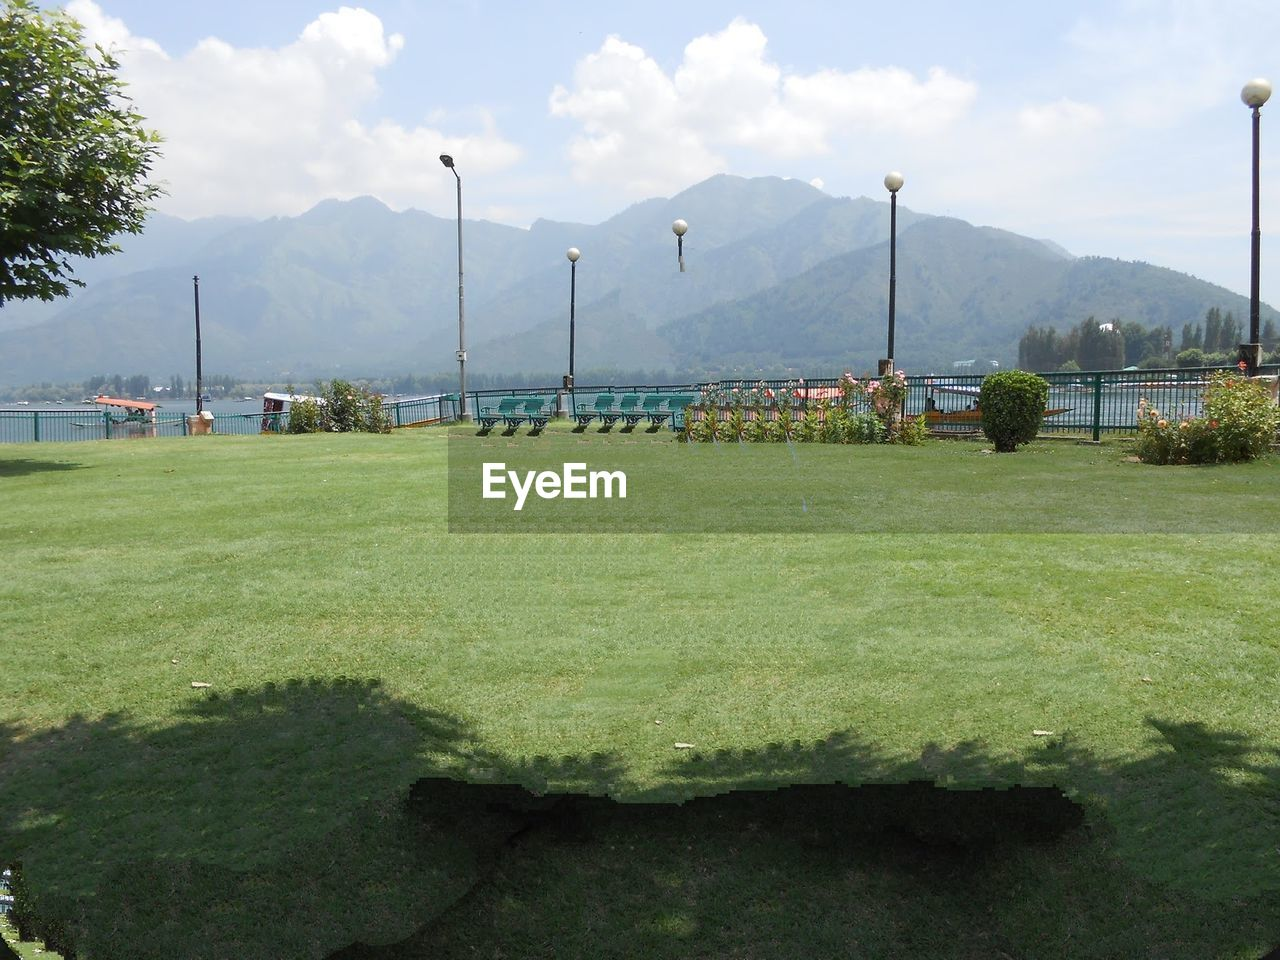 mountain, field, grass, sky, green color, scenics, nature, day, beauty in nature, landscape, no people, tranquility, tranquil scene, mountain range, outdoors, growth, tree, soccer field, playing field, sport, goal post, golf course